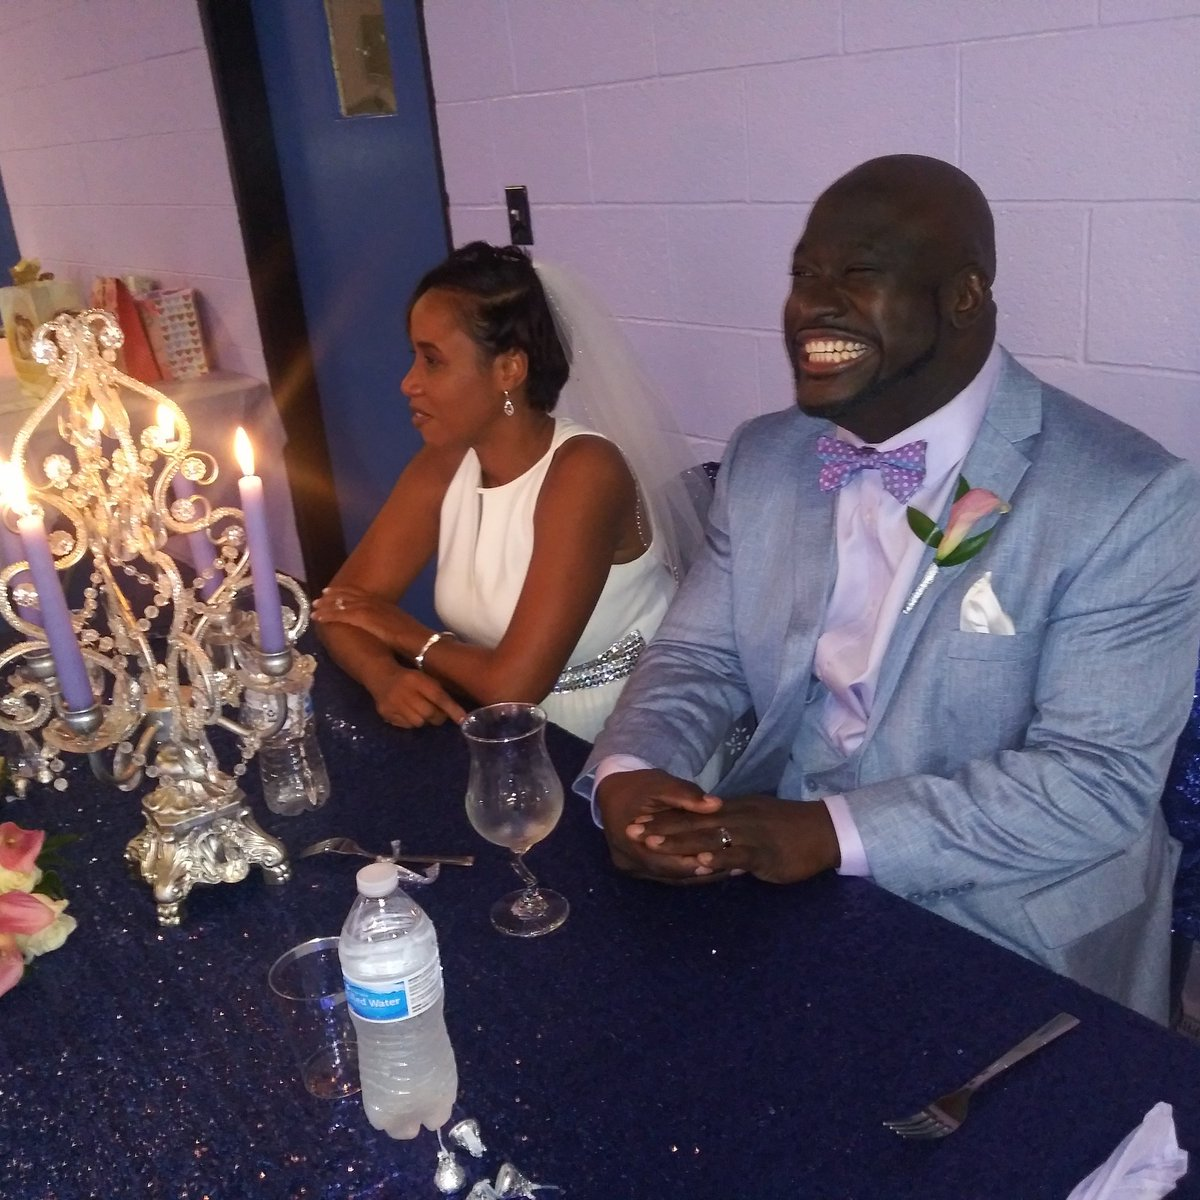 #Congrats to #MyBro #KevonMalcolm & #DianMalcolm on their wedding last weekend. #wedding #Columbus #Ohio #Congrats https://t.co/fOD4Co0GvI